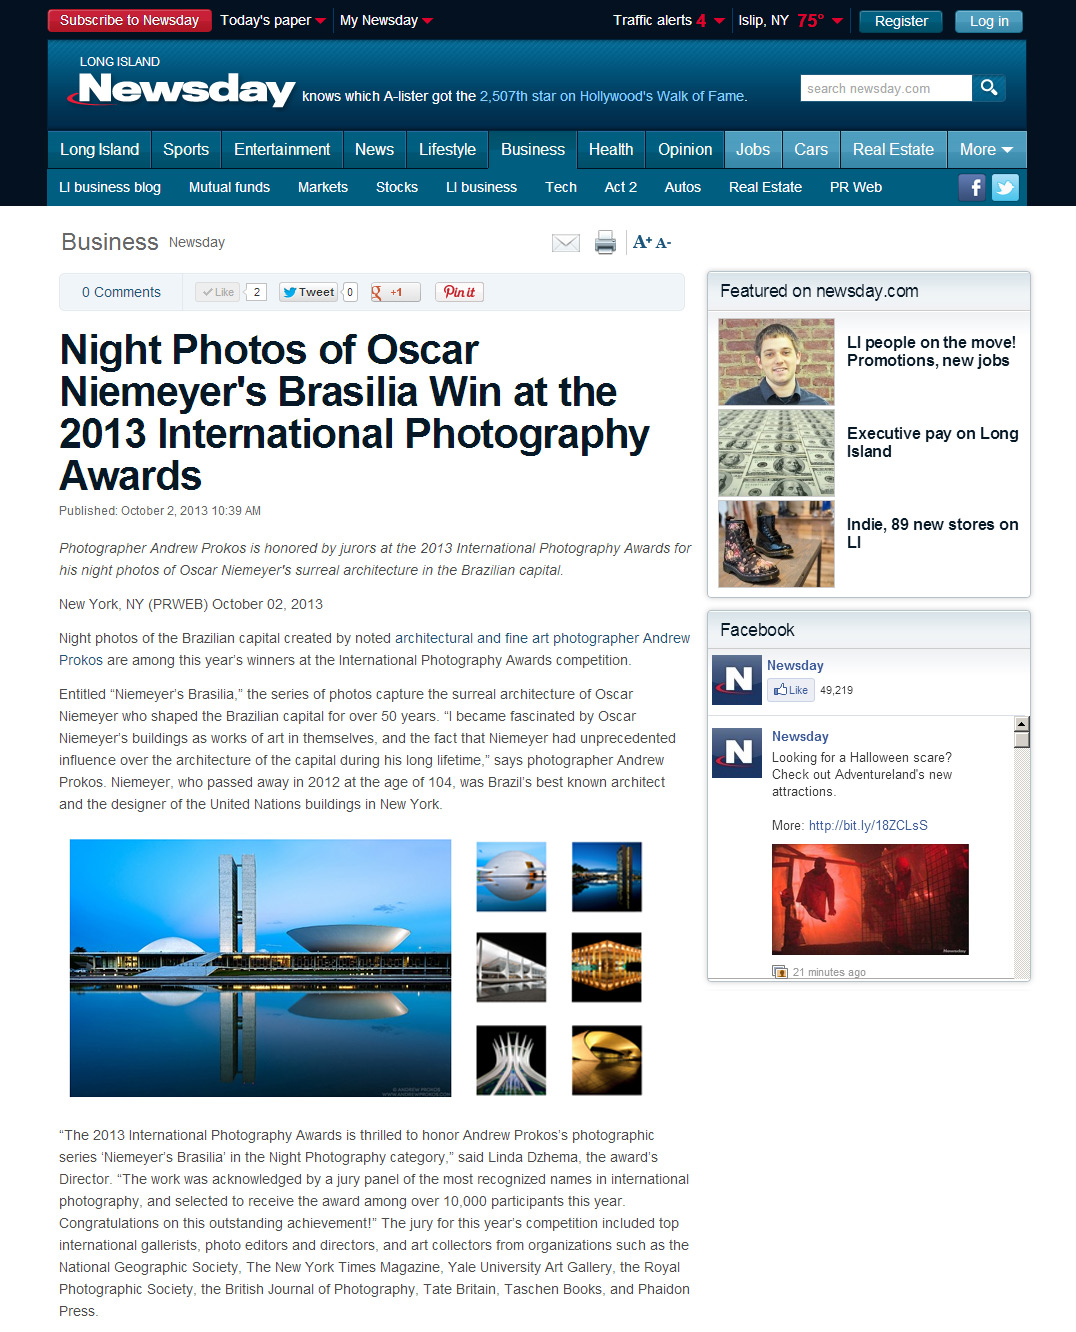 Newsday article about photographer Andrew Prokos